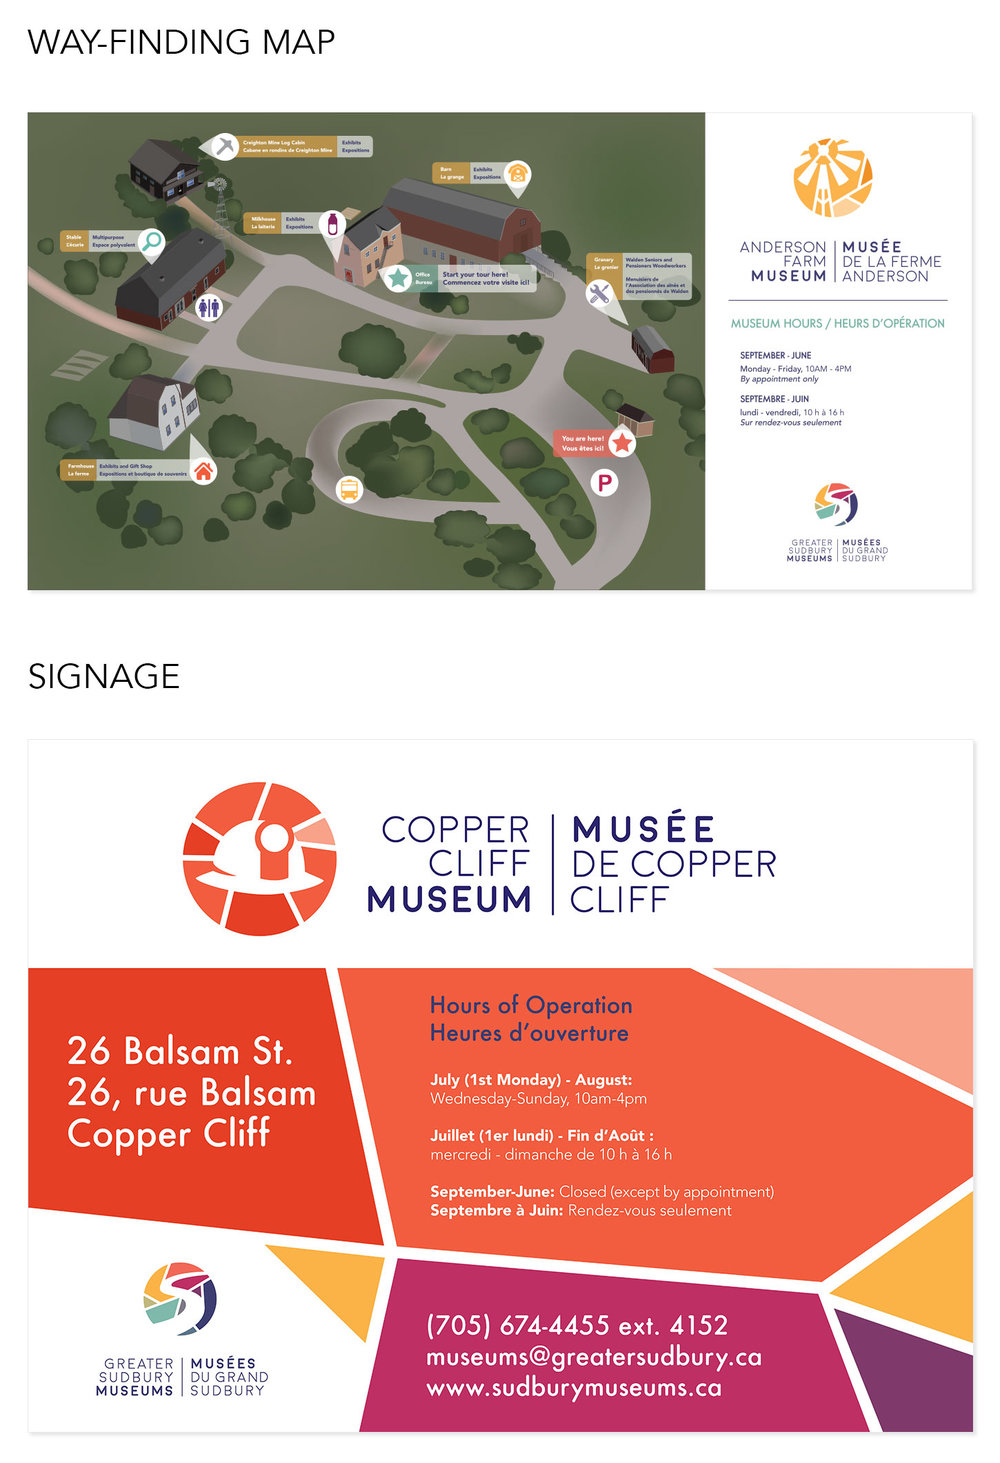 Greater-Sudbury-Museums-3-HighRes-web.jpg